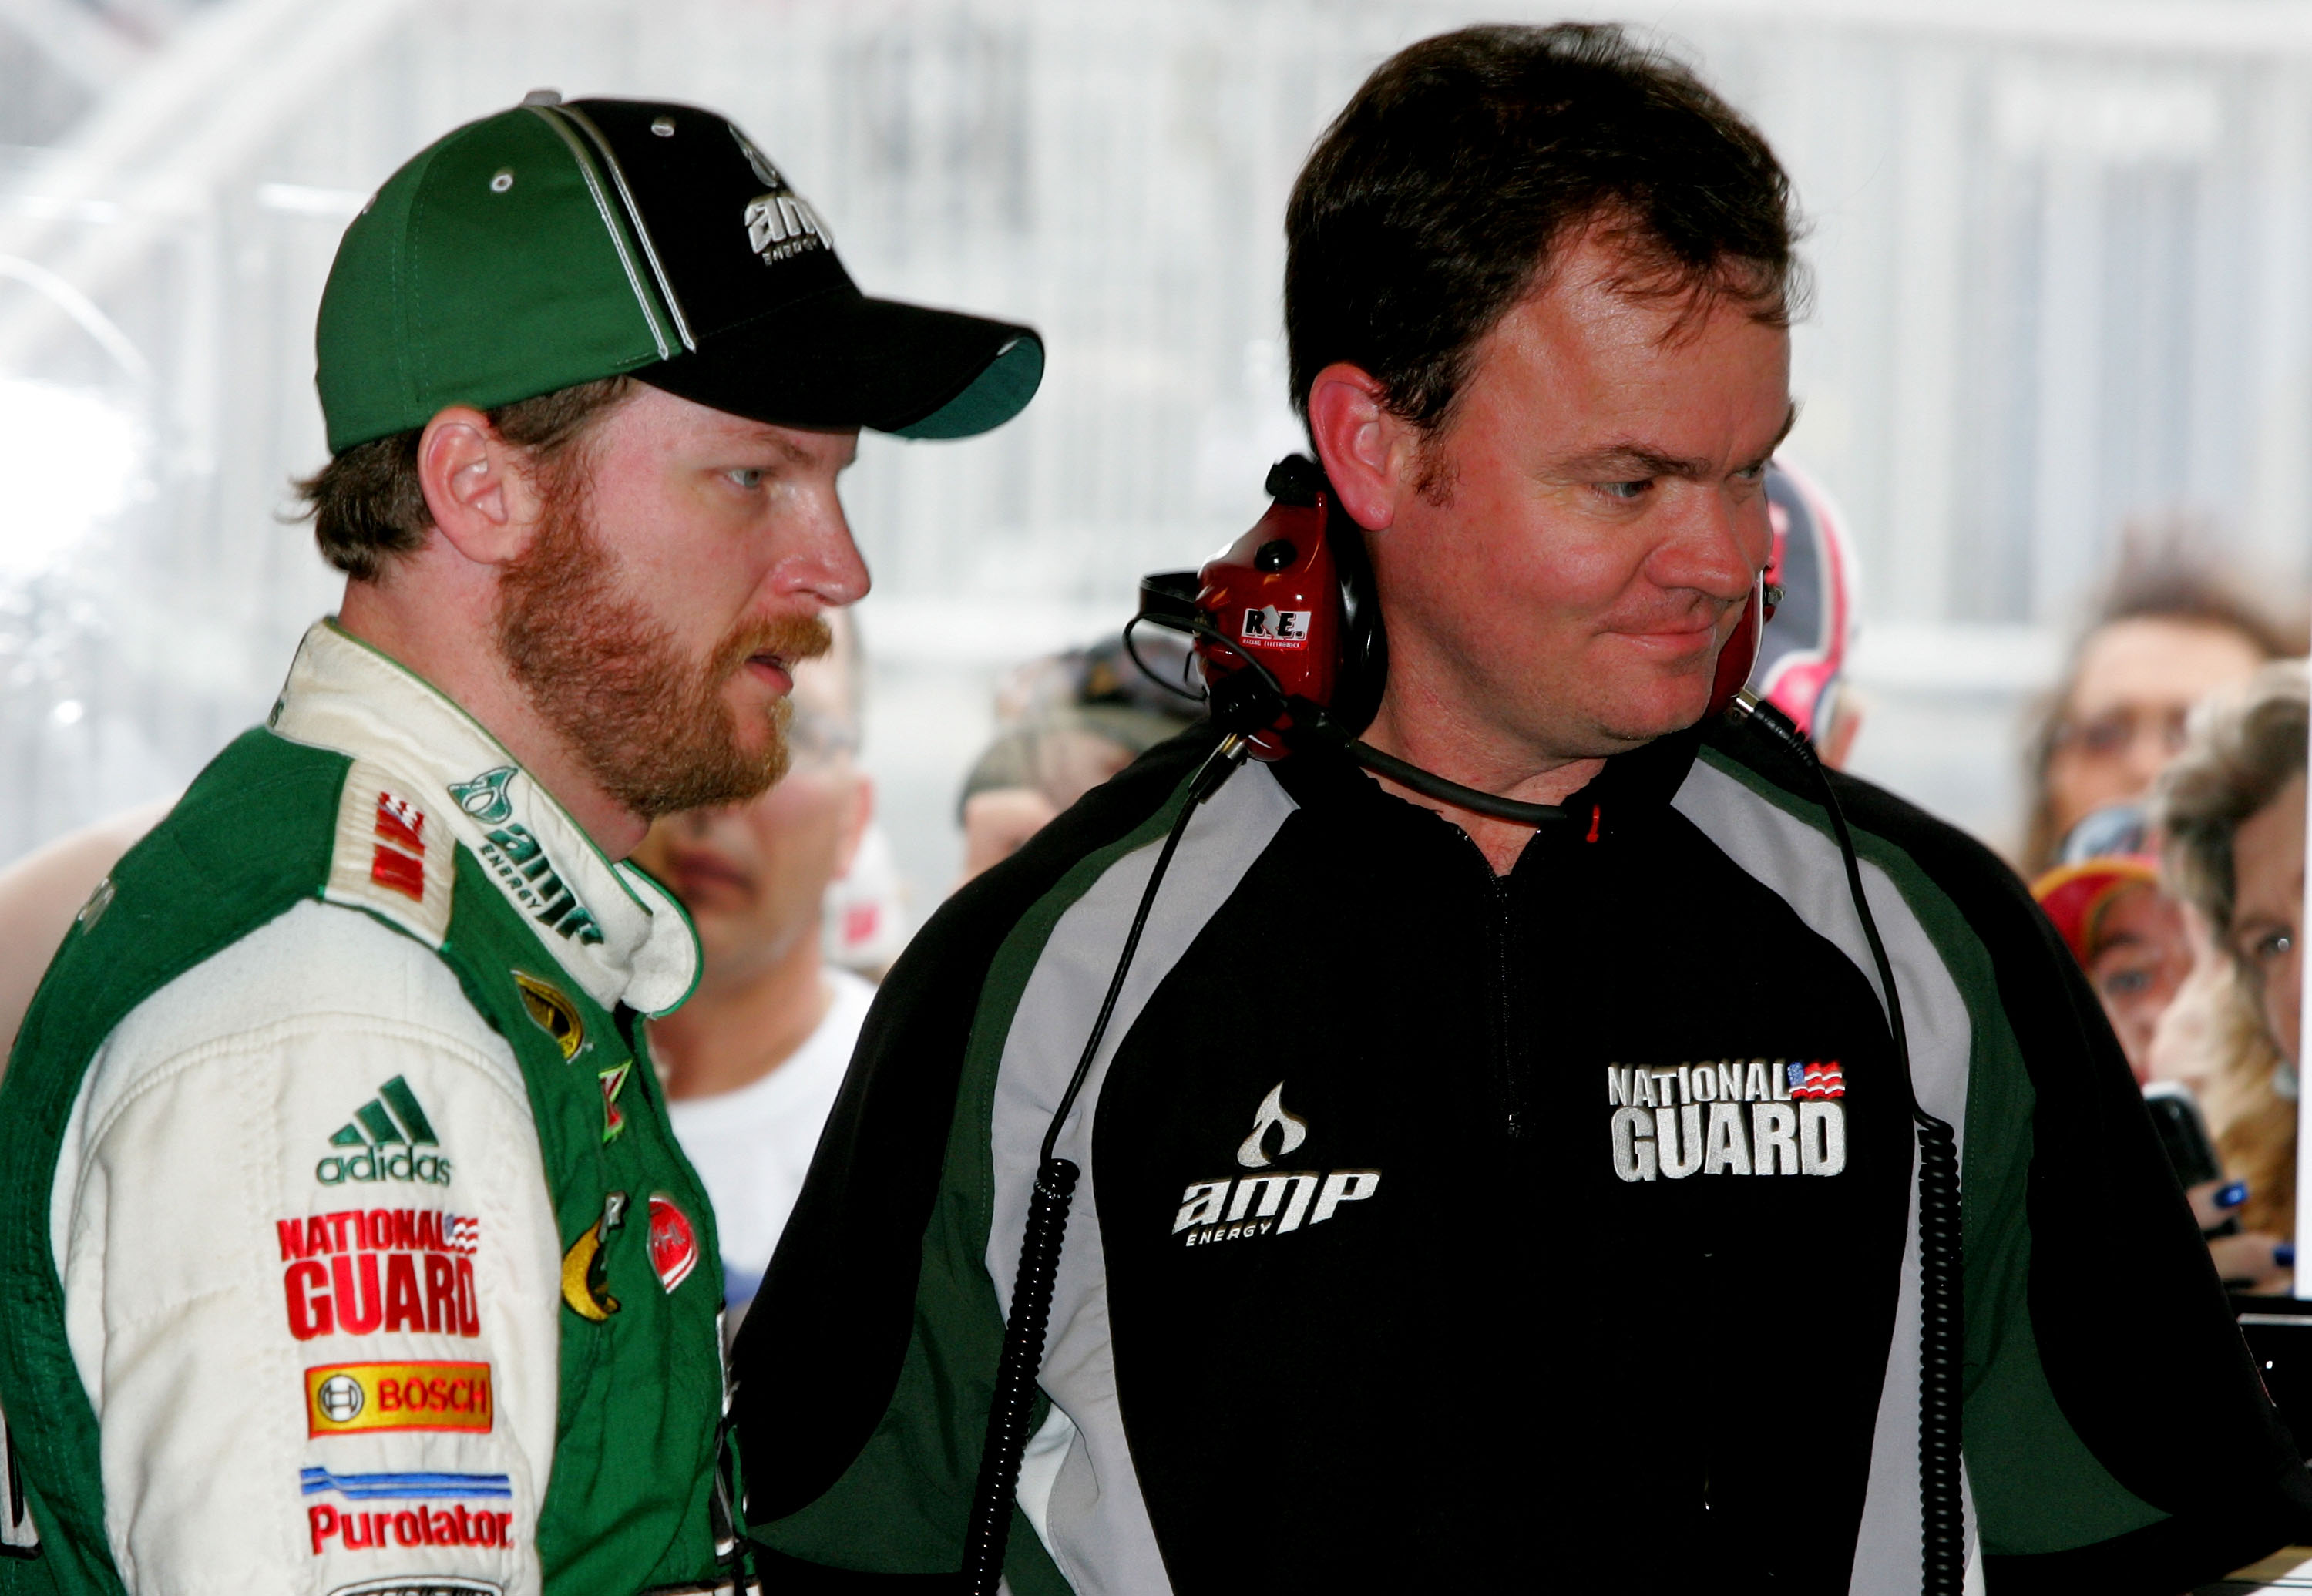 DAYTONA BEACH, FL - FEBRUARY 05:  Dale Earnhardt Jr., driver of the #88 AMP Energy Chevrolet, stands in the garage with crew chief Lance McGrew during practice for the NASCAR Sprint Cup Series Daytona 500 at Daytona International Speedway on February 5, 2